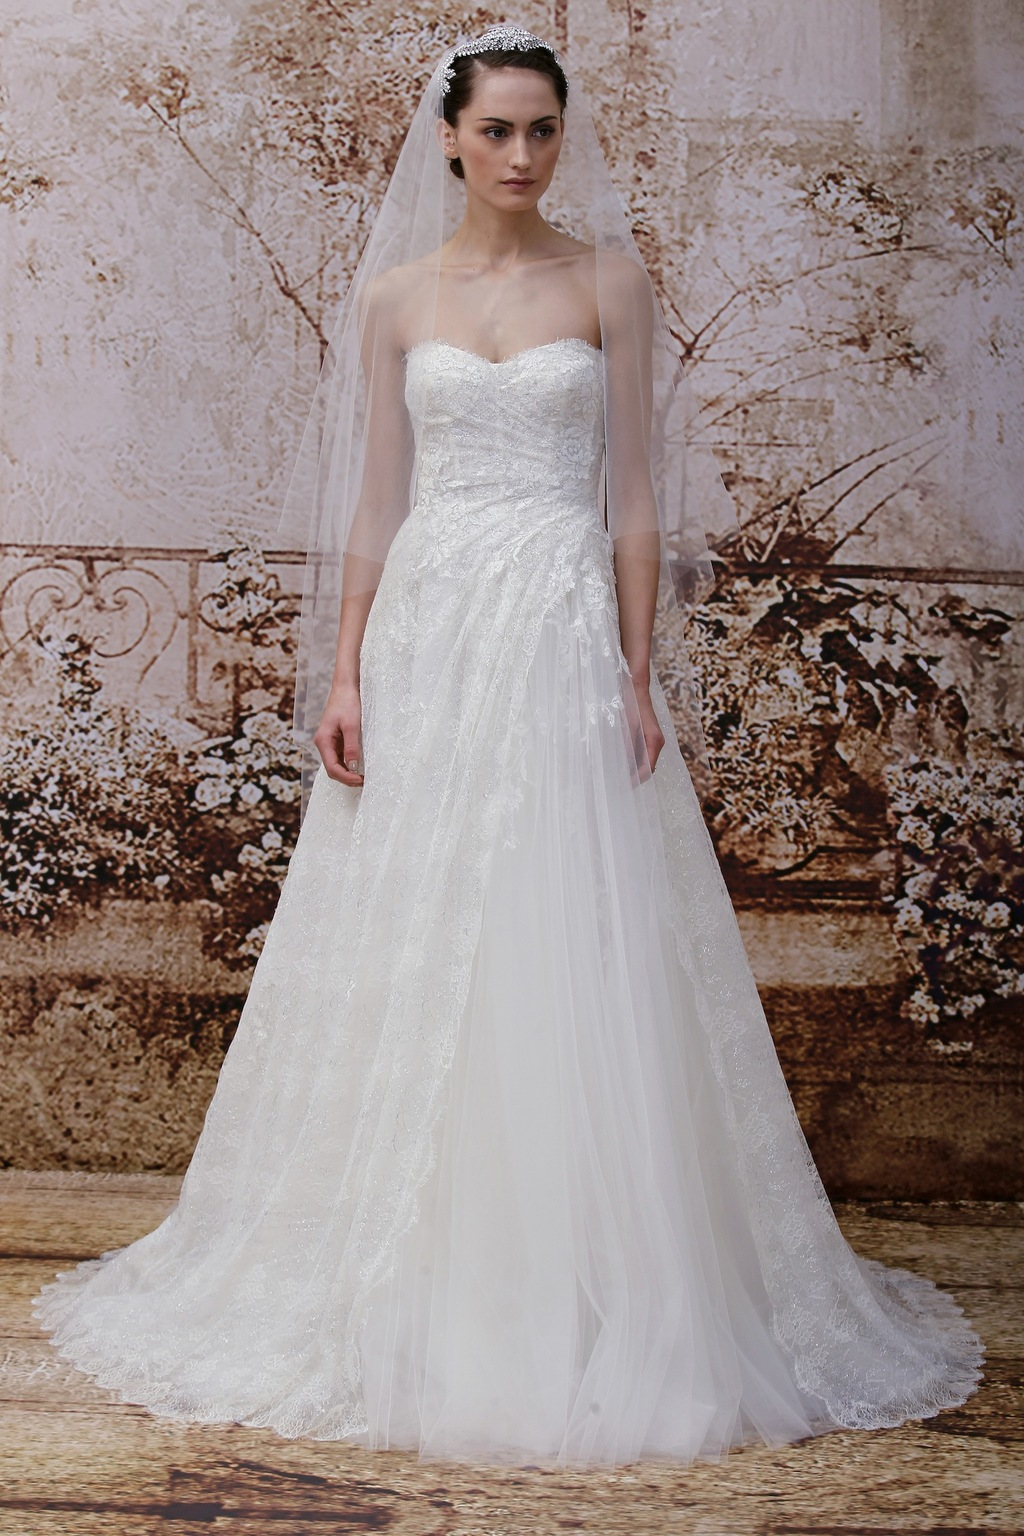 Wedding-dress-by-monique-lhuillier-fall-2014-bridal-look-22.full